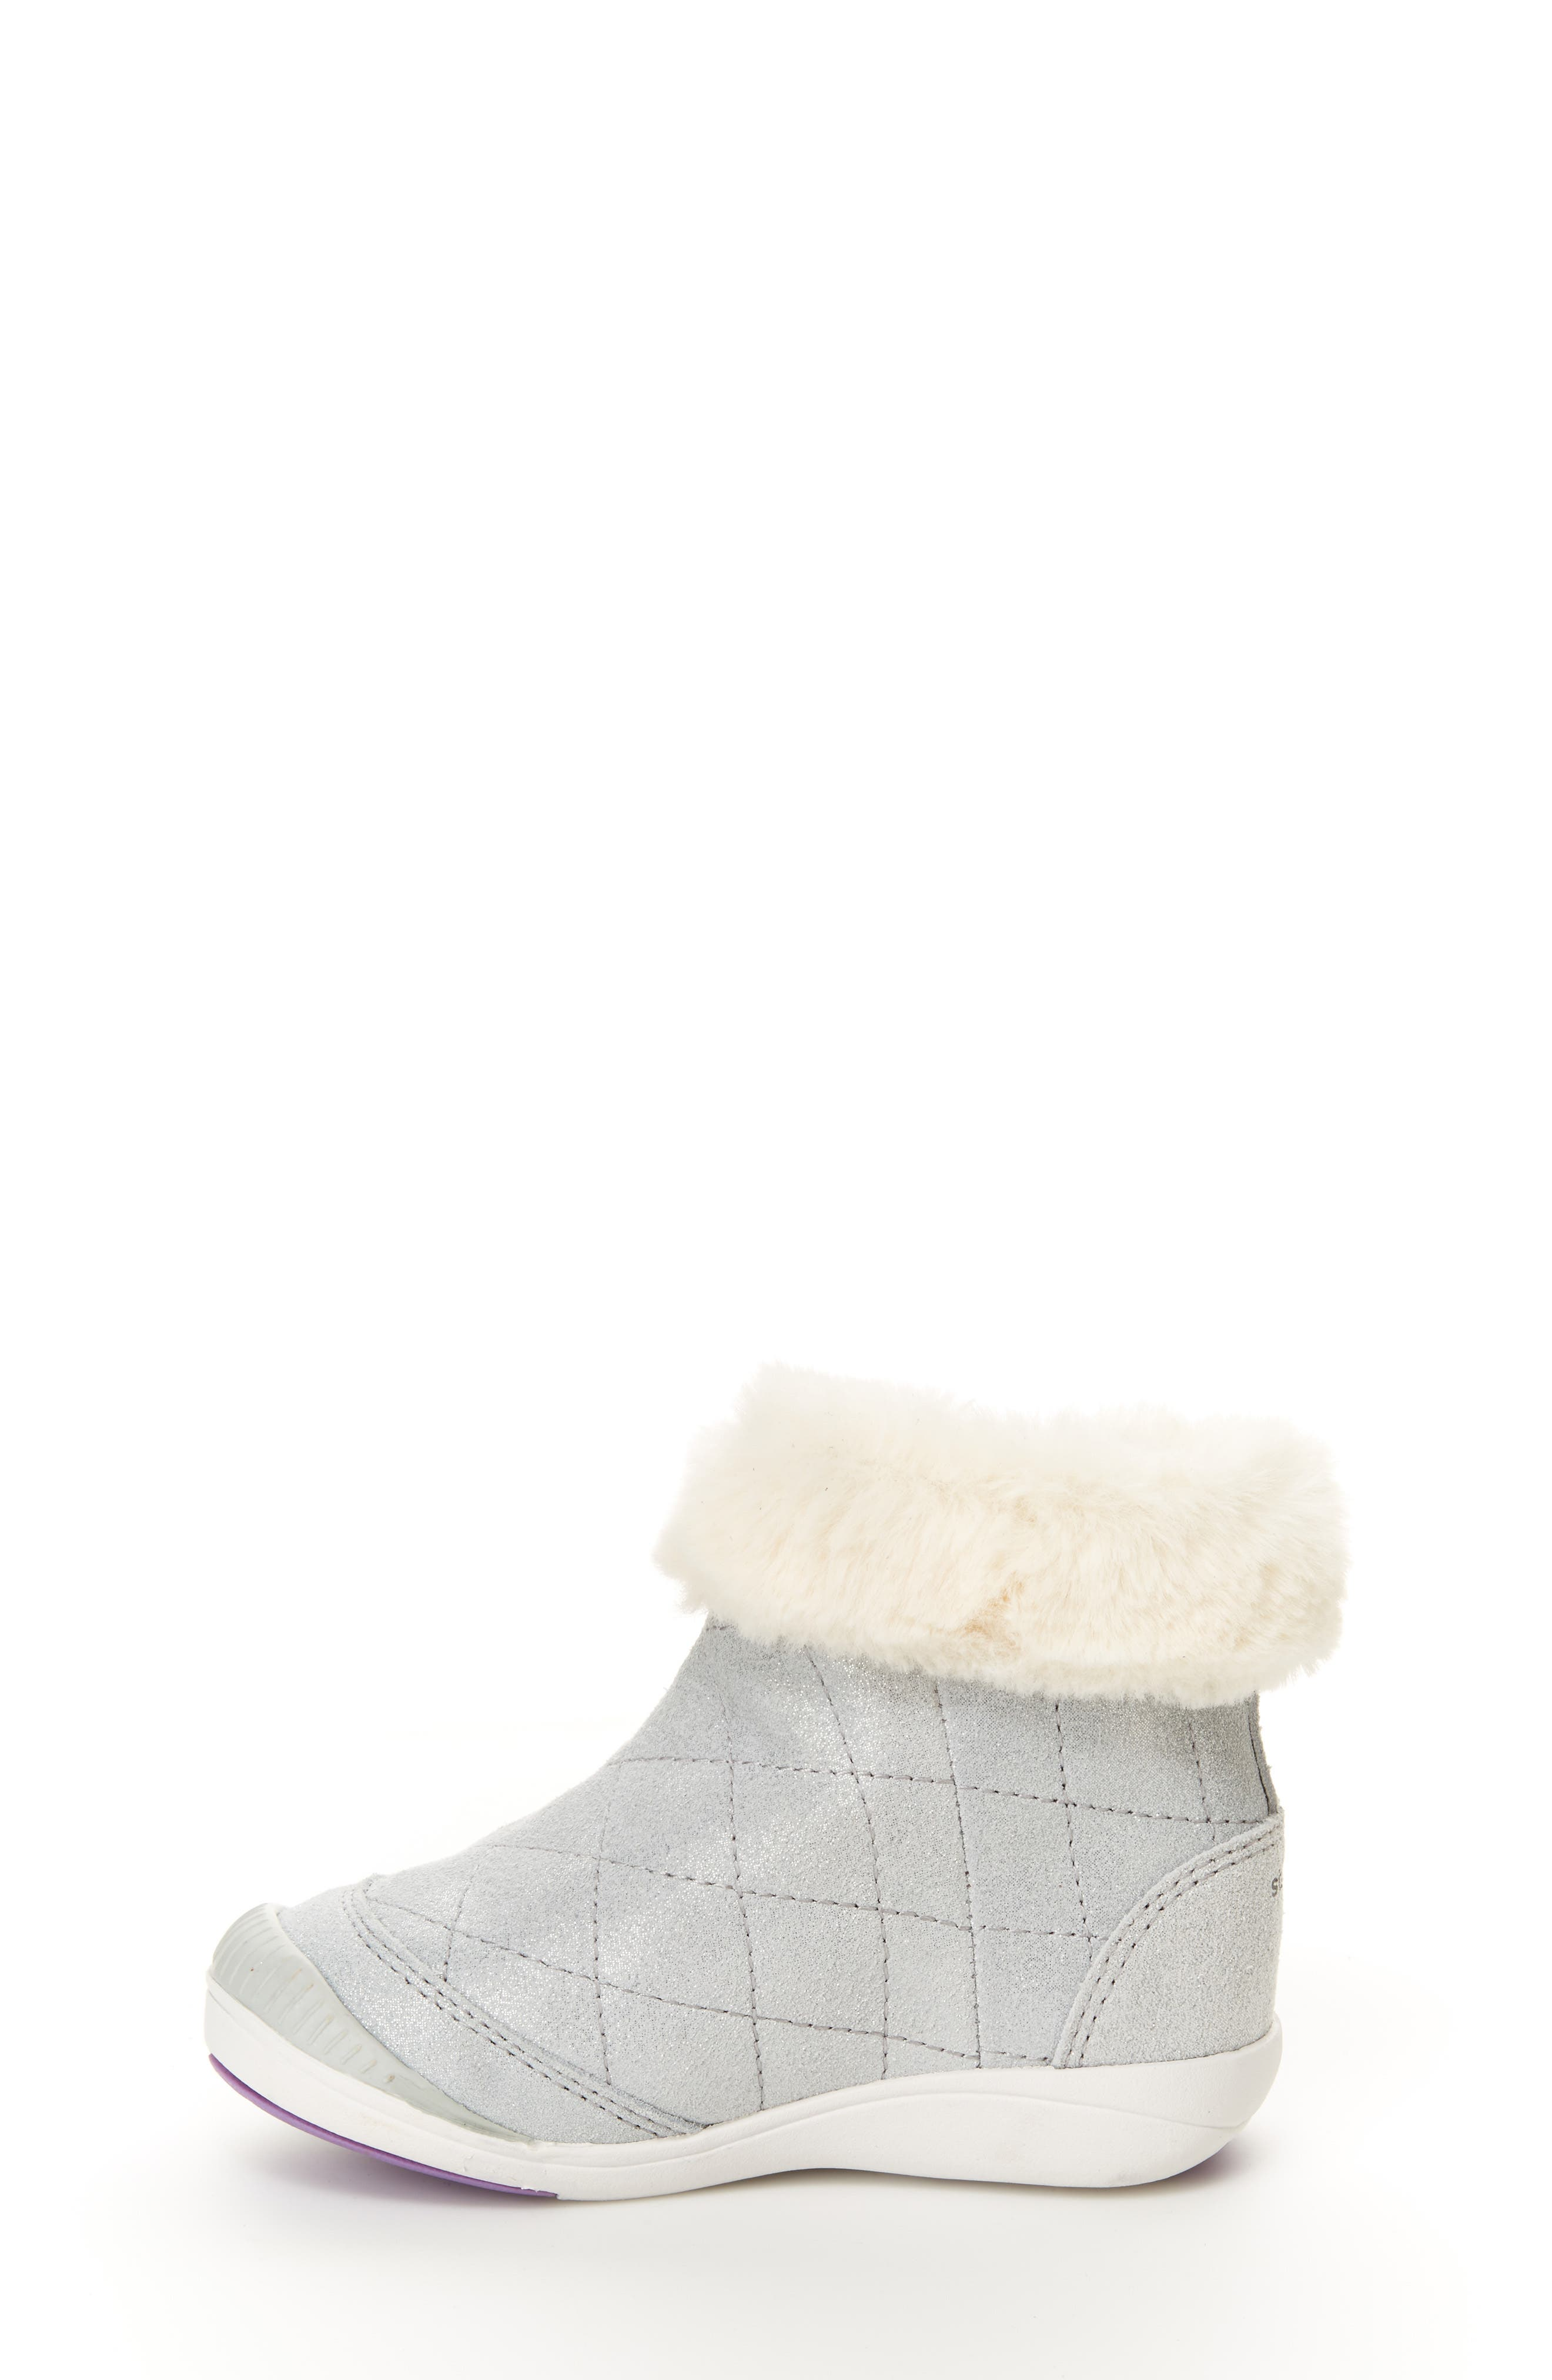 Chloe Faux Fur Quilted Bootie,                             Alternate thumbnail 7, color,                             SILVER